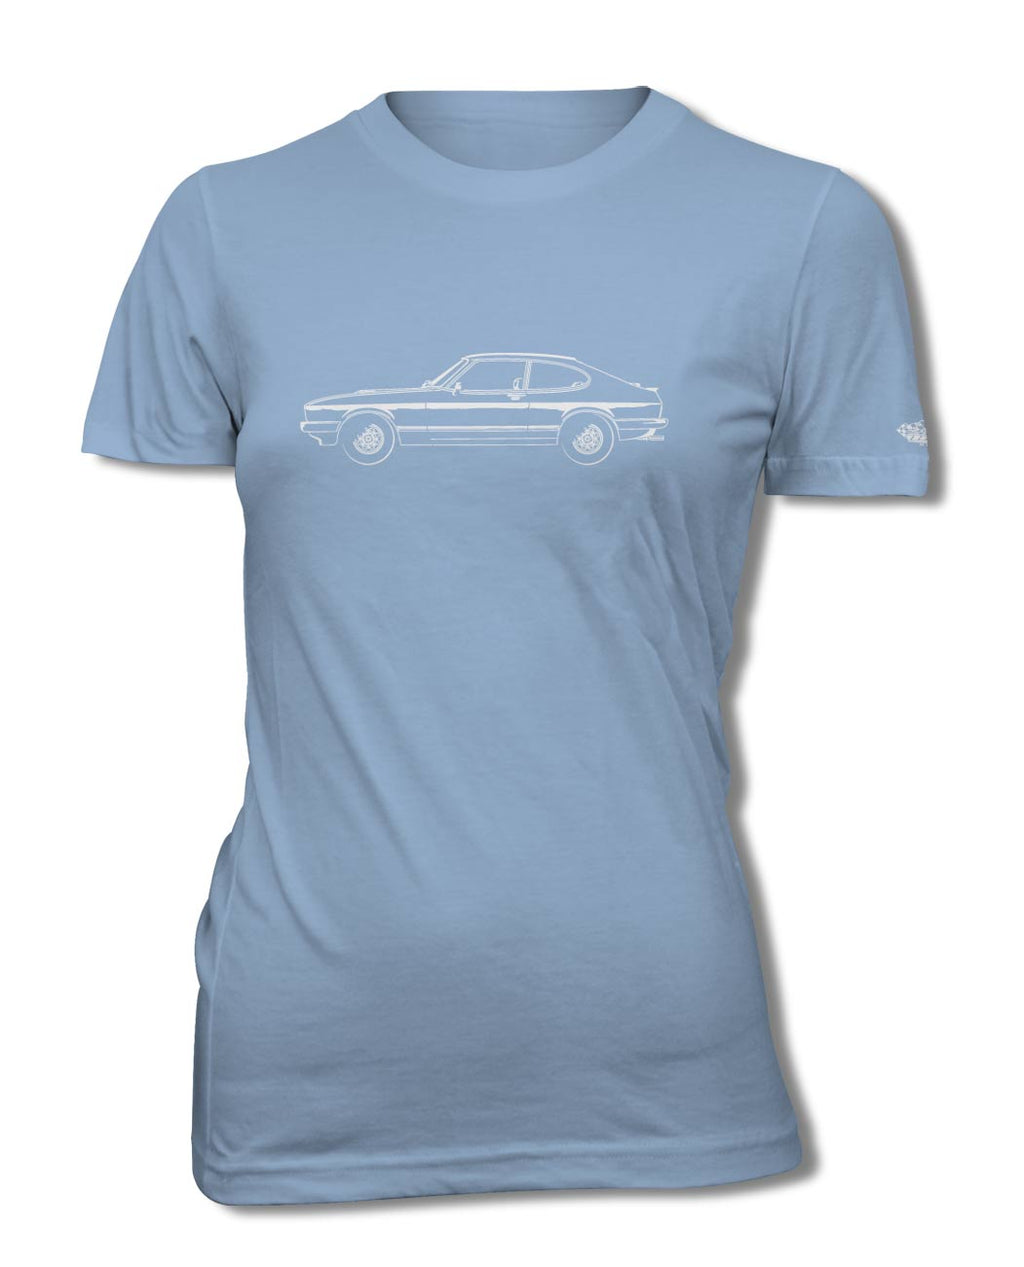 Ford Capri MK III Coupe T-Shirt - Women - Side View